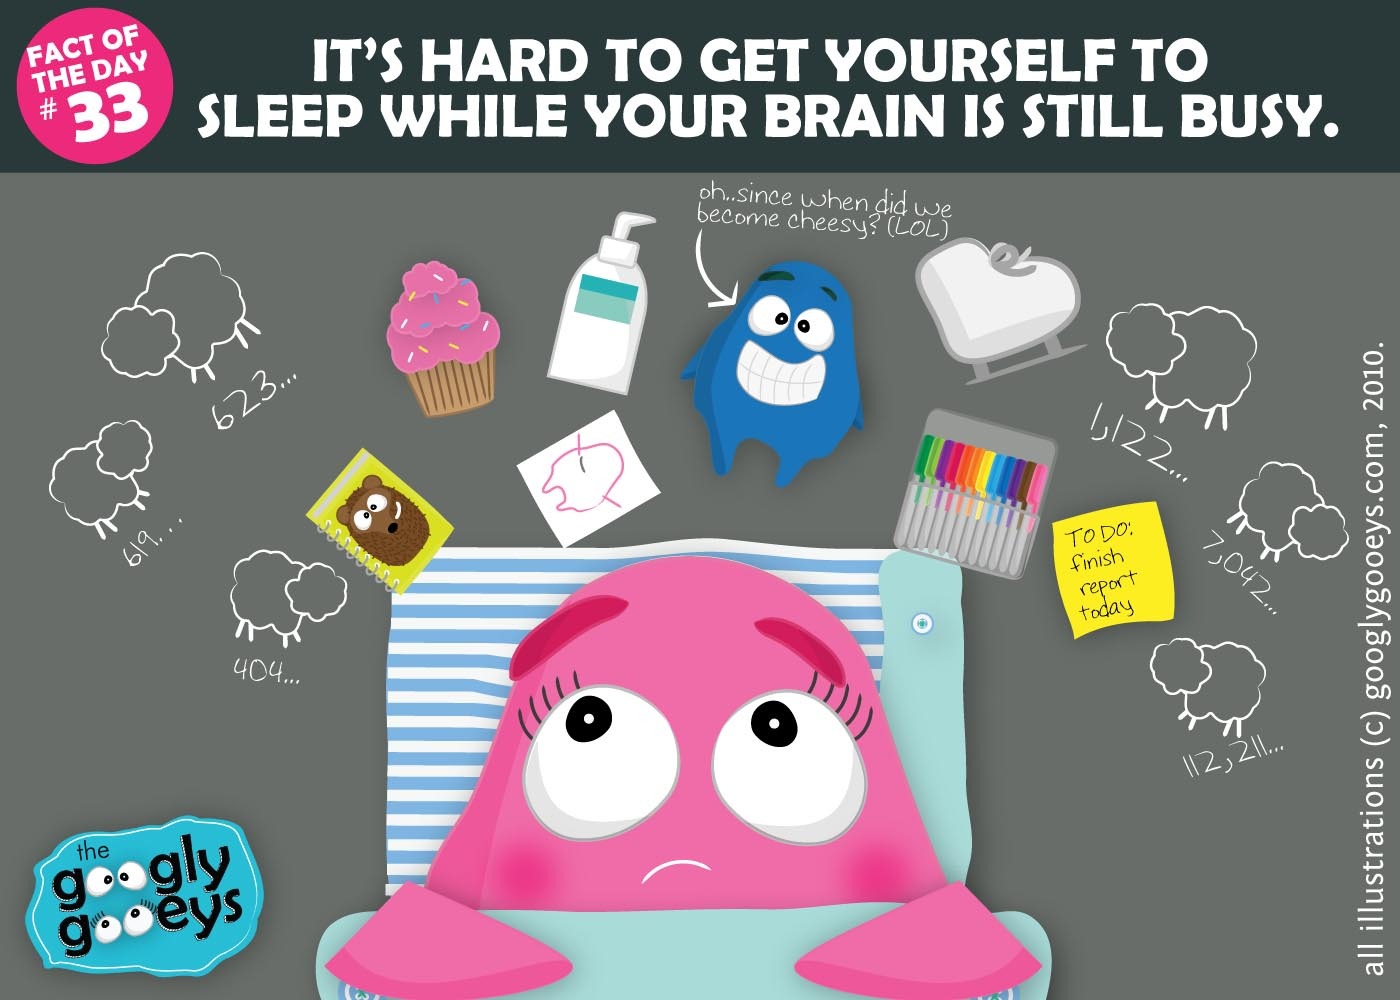 Fact of the Day 33: It's hard to get yourself to sleep when your brain is still busy.